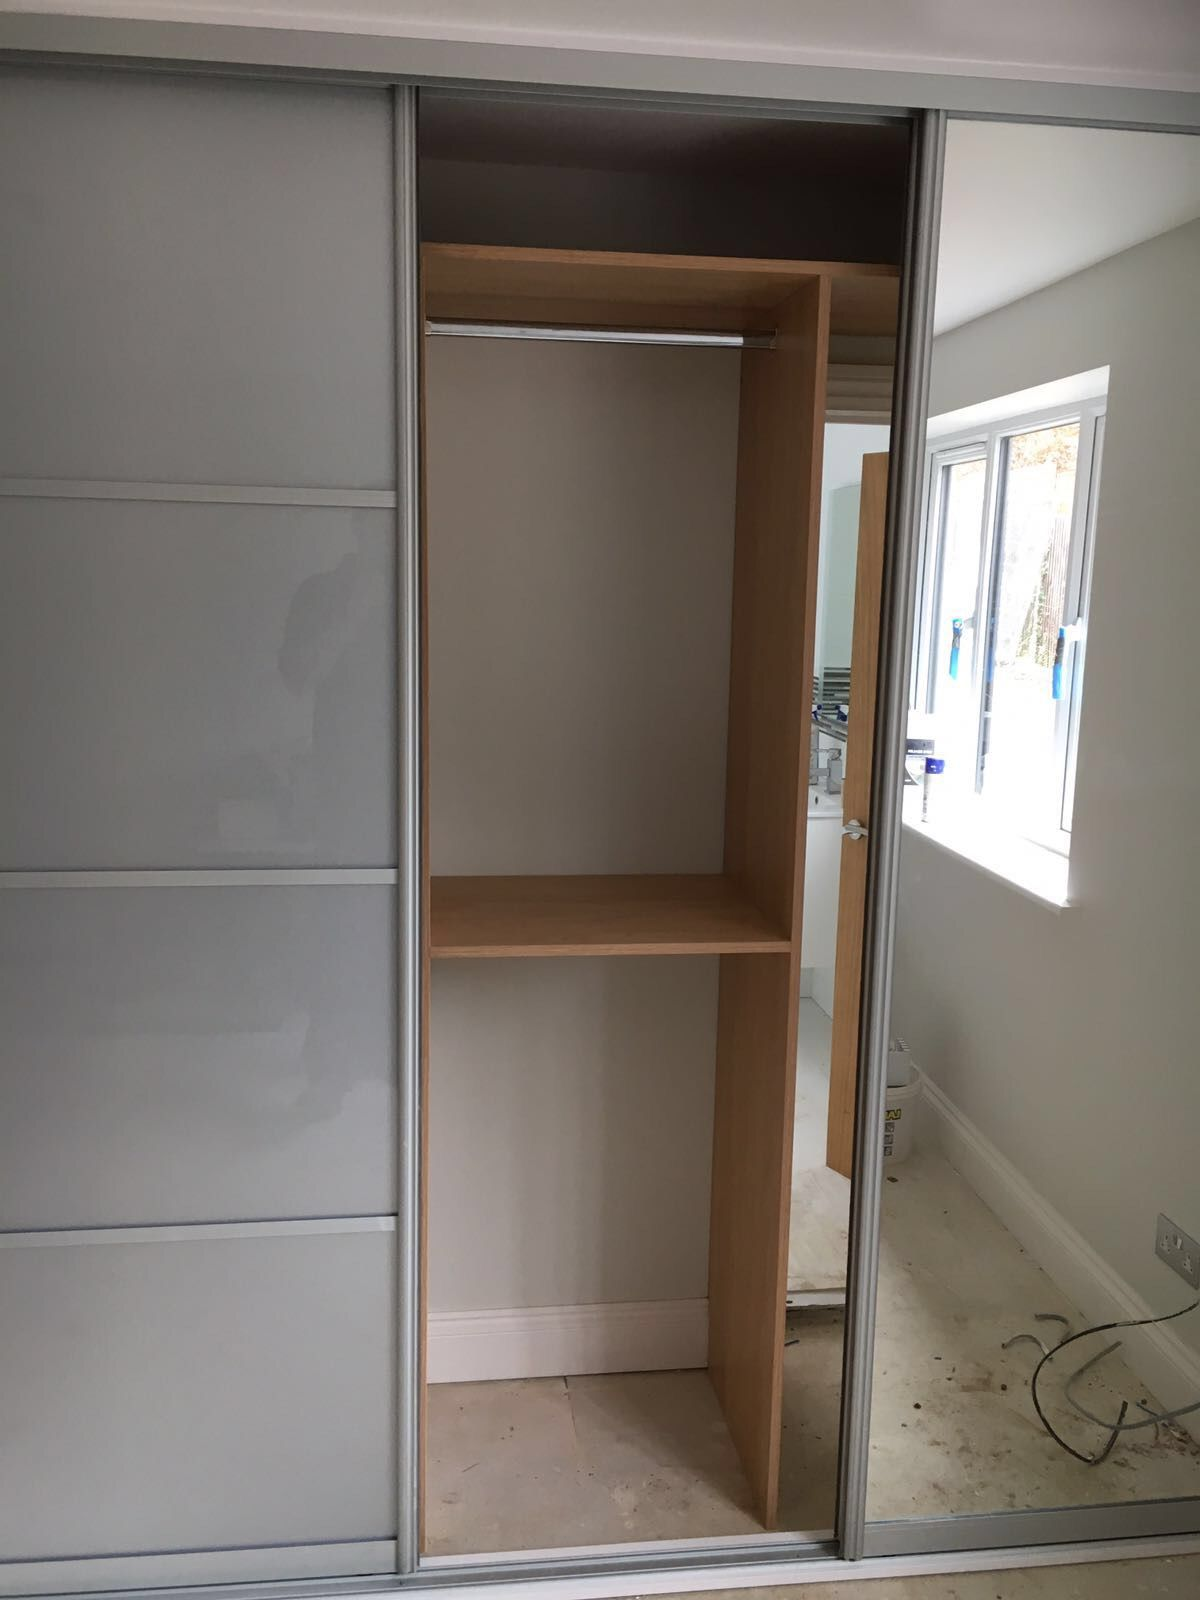 3 door sliding wardrobe silver glass and mirror doors Hidden door to bathroom